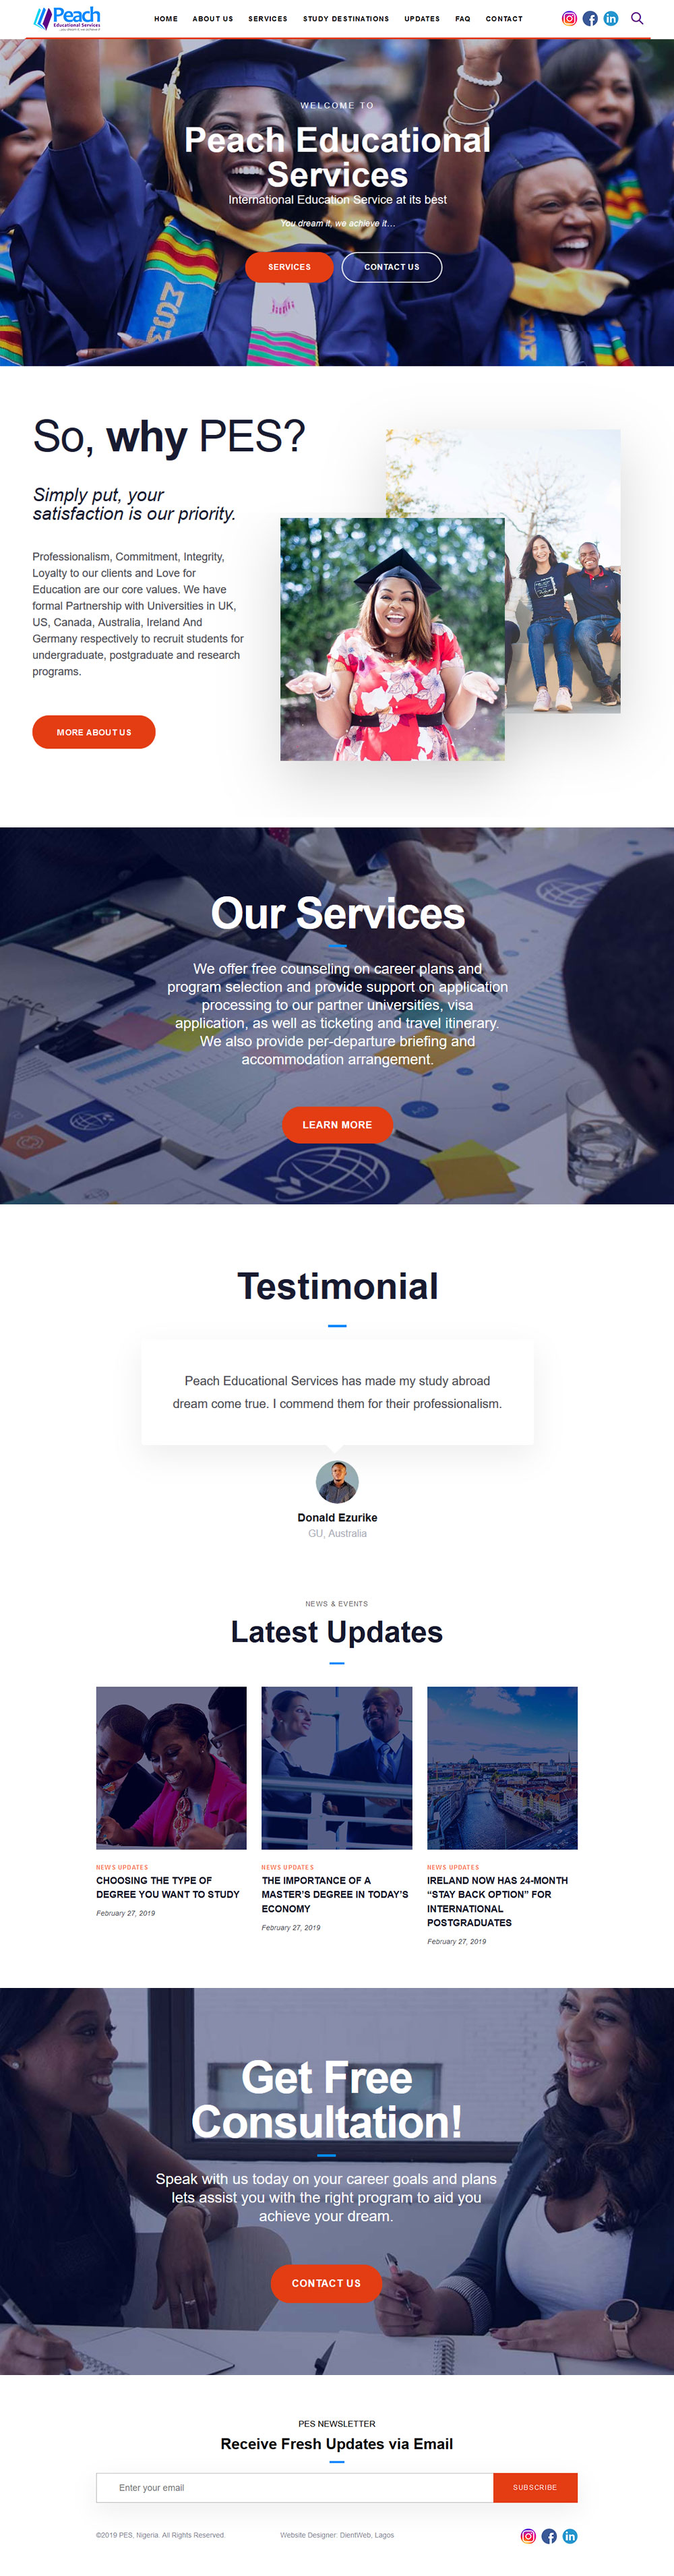 peach educational website design